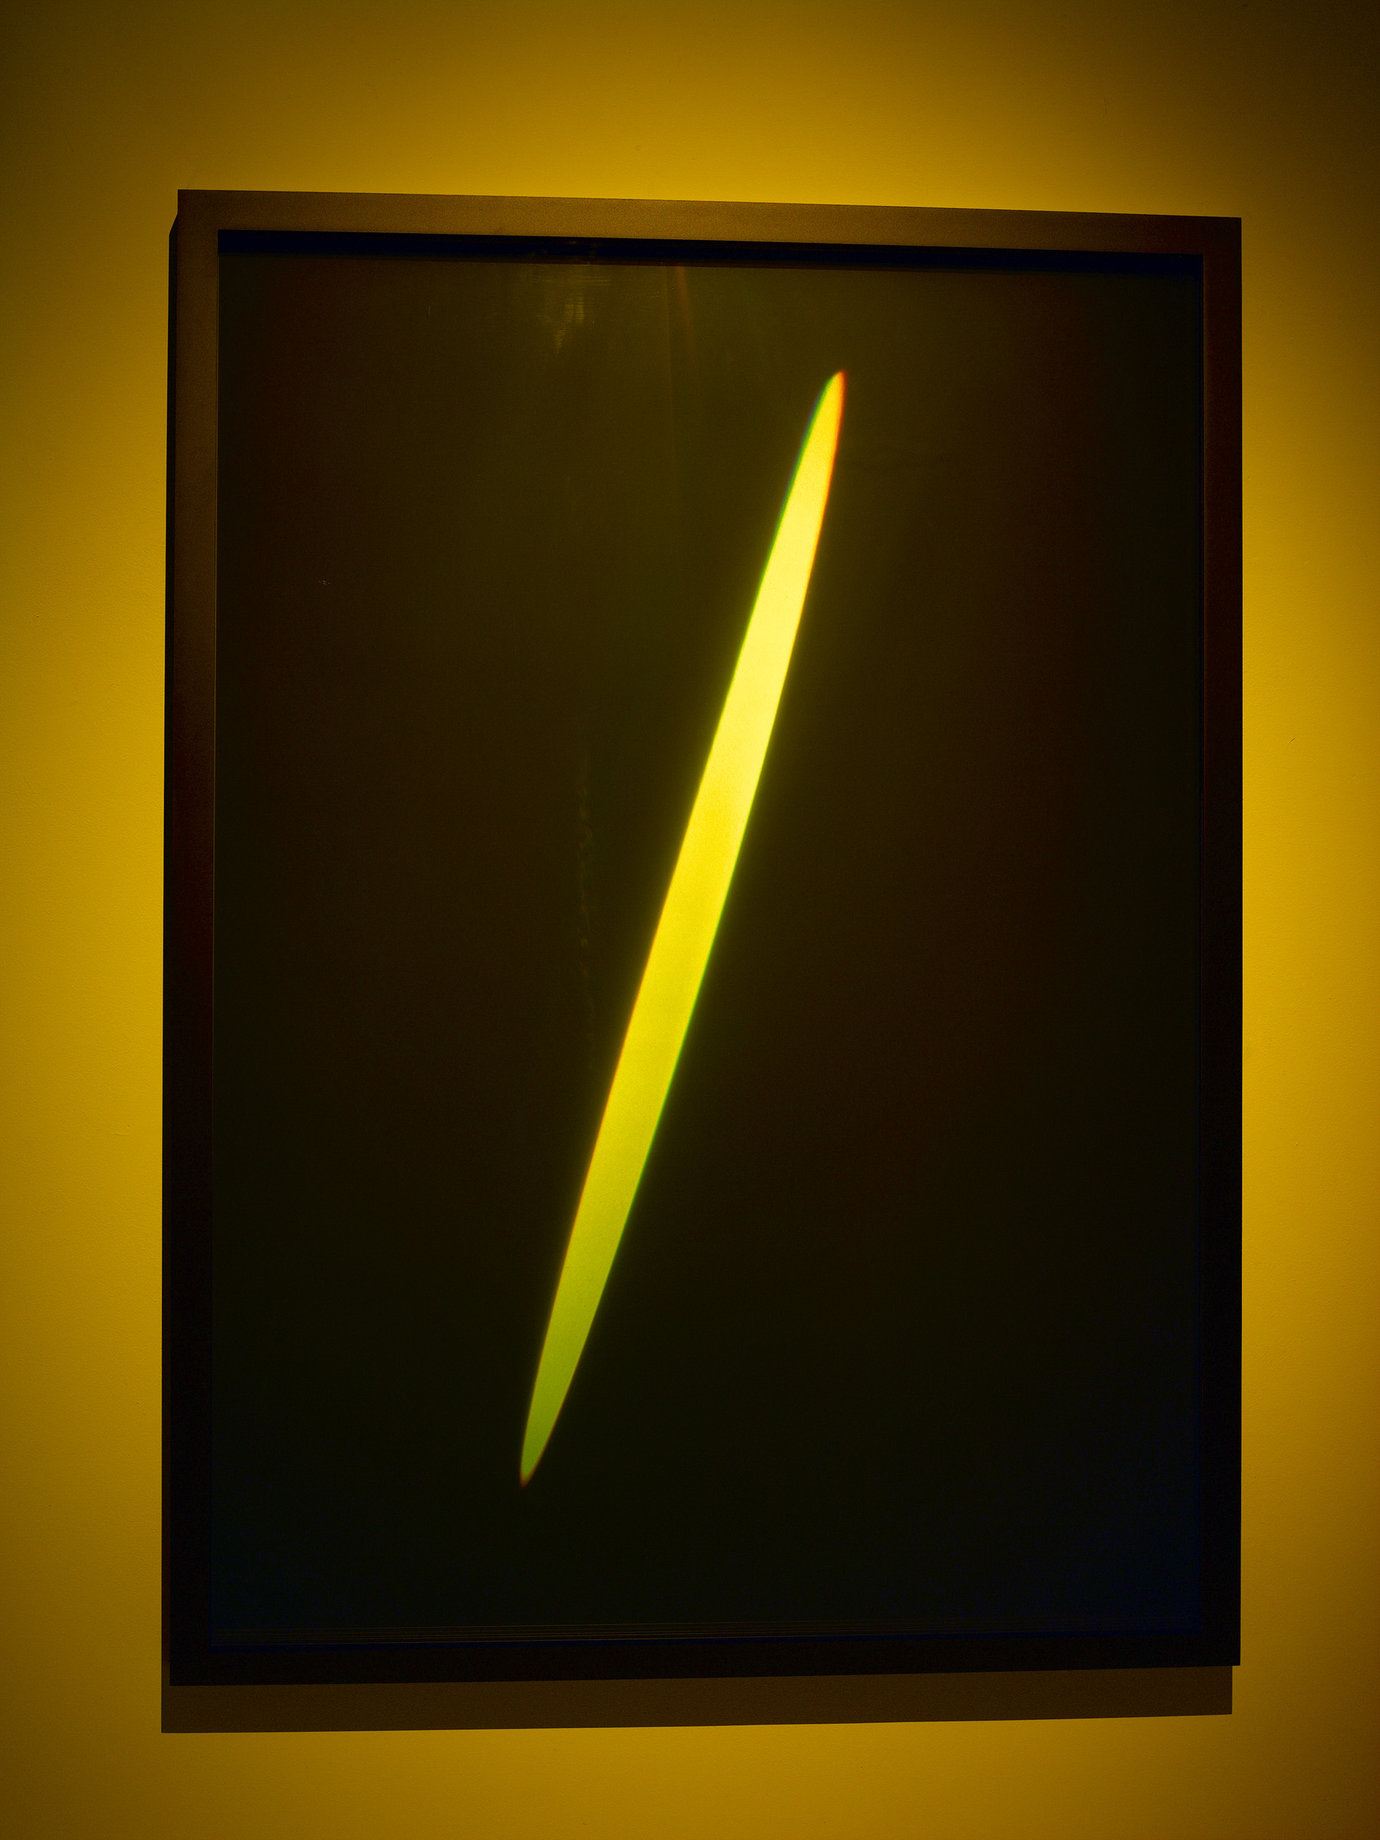 ", 2011. Transmission light work, 55-3/16"" x 40-3/16"" x 2-1/2"" (140.2 cm x 102.1 cm x 6.4 cm)."